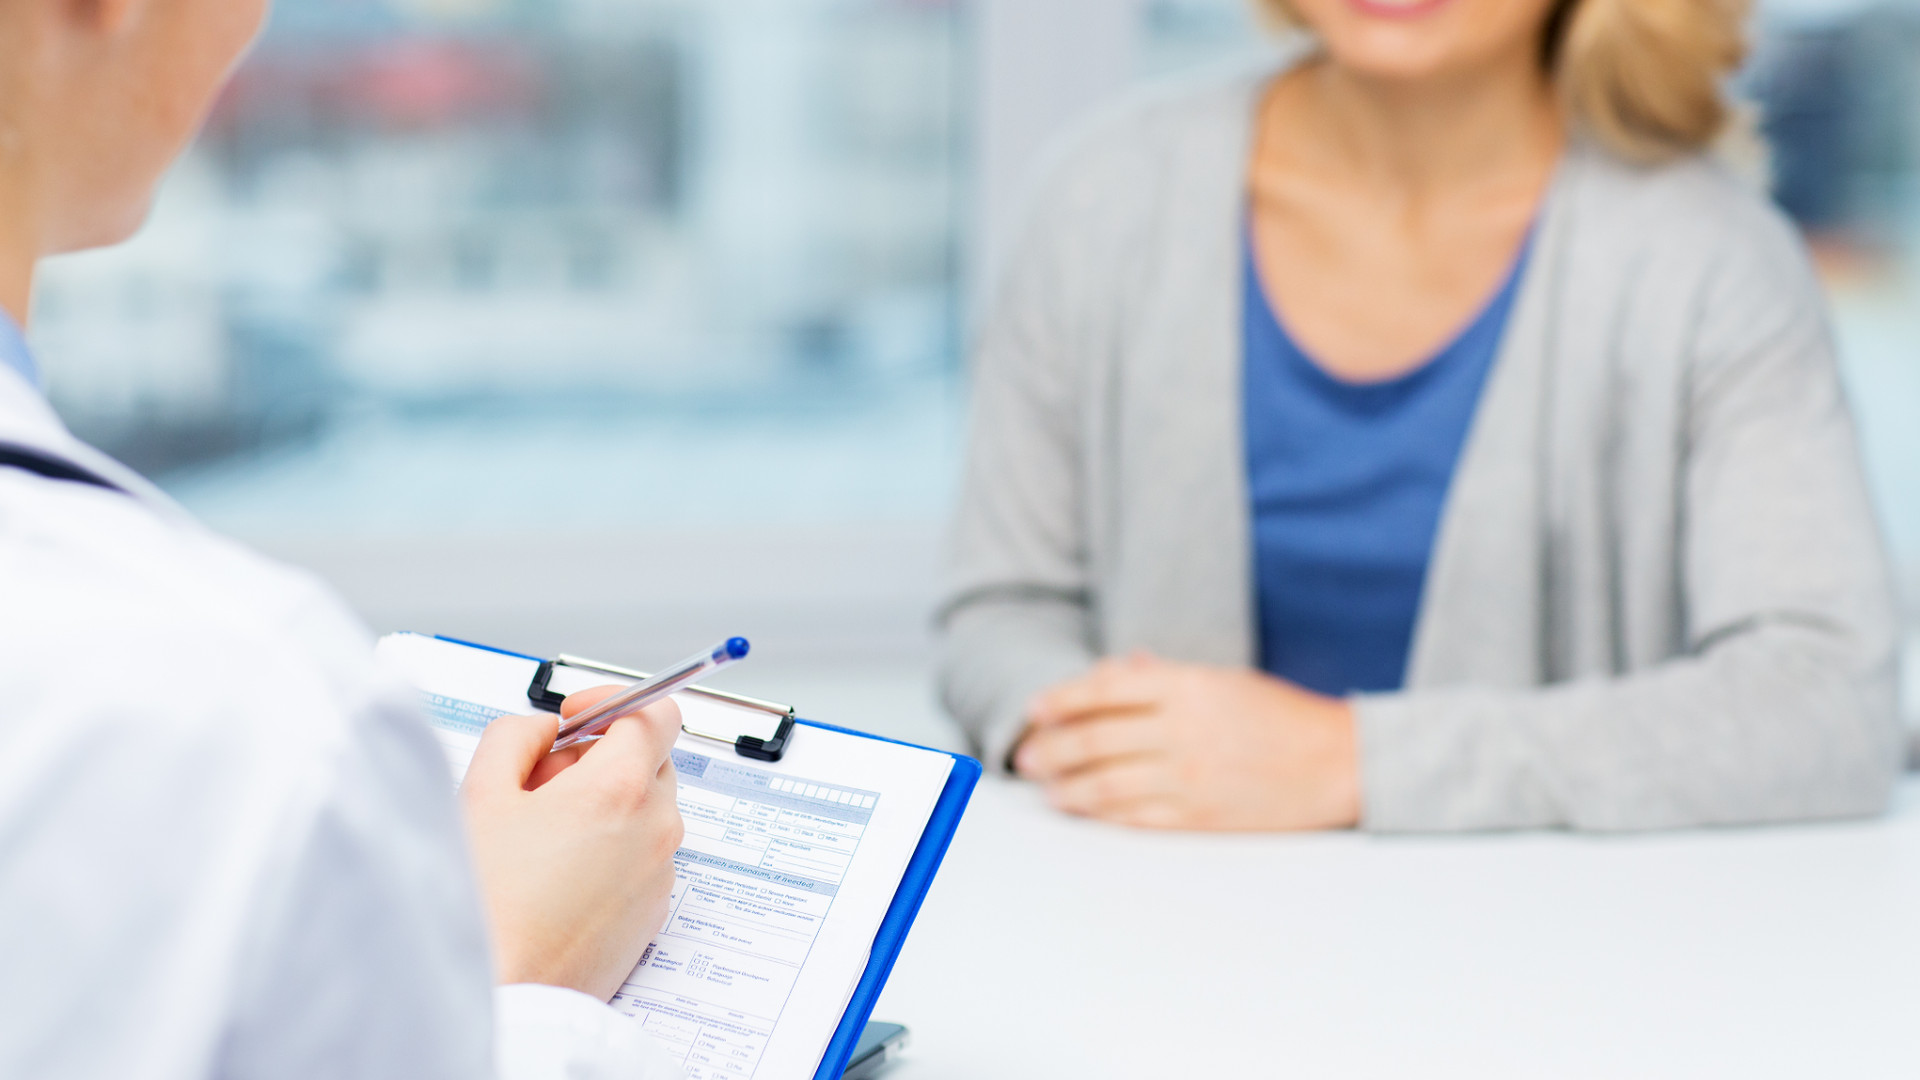 close-up-of-doctor-and-woman-meeting-at-